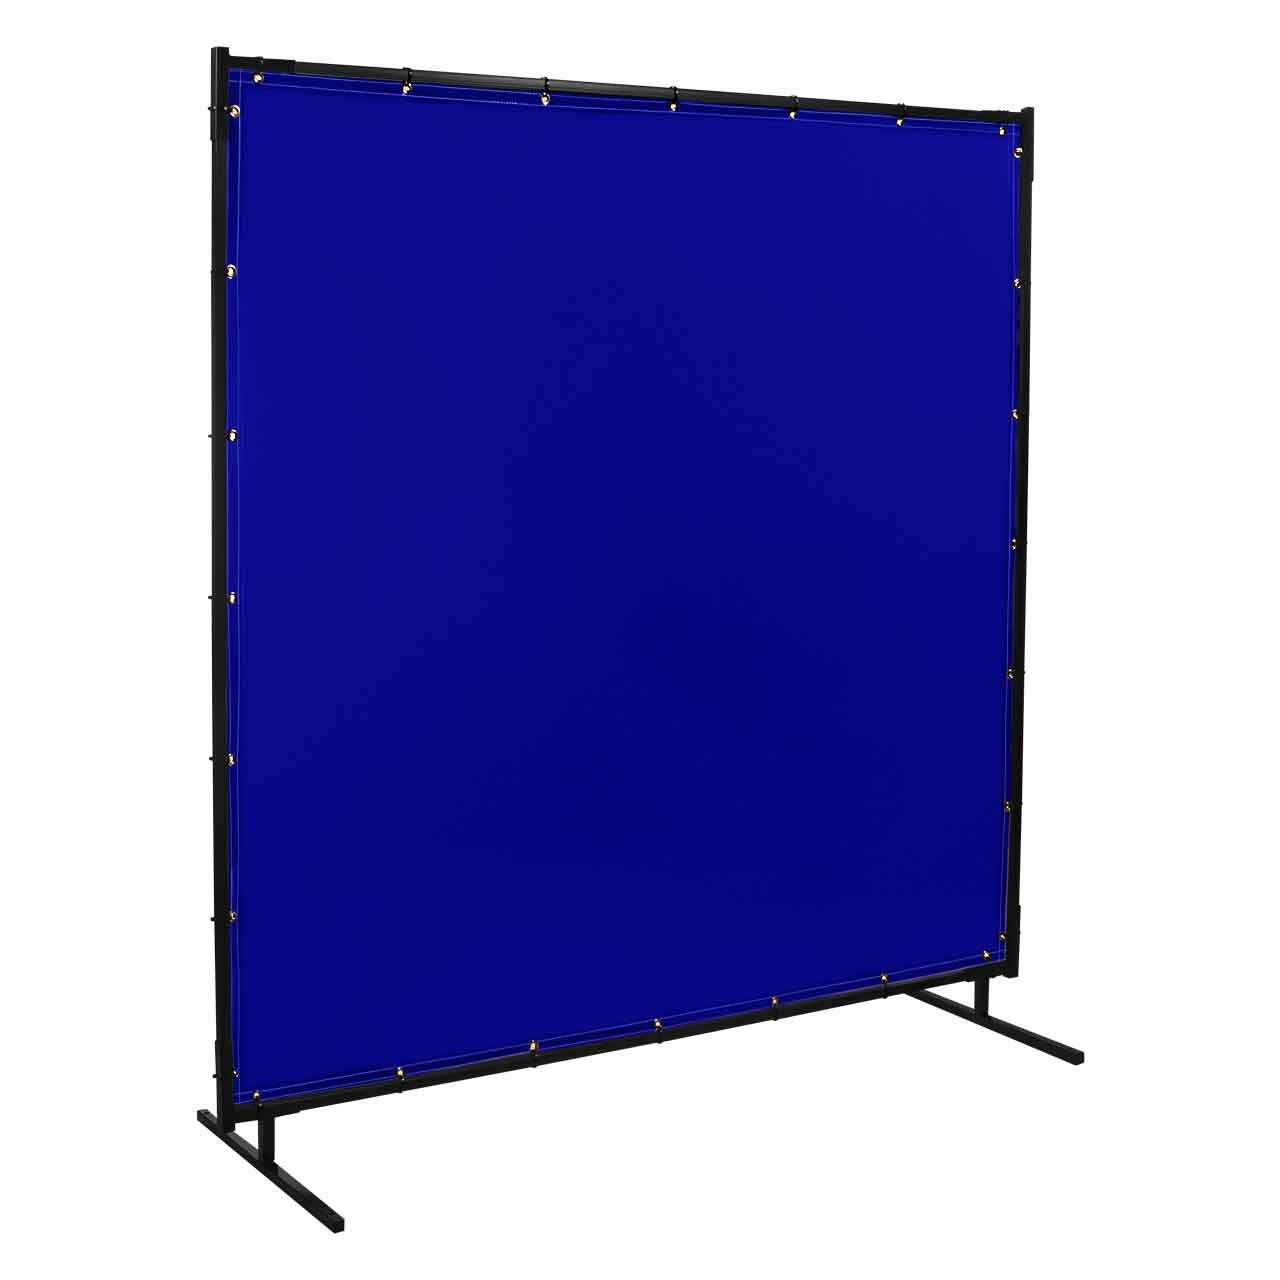 Steiner 525-6X10 Protect-O-Screen Classic Welding Screen with Flame Retardant 14 Mil Tinted Transparent Vinyl Curtain, Blue, 6' x 10' by Steiner